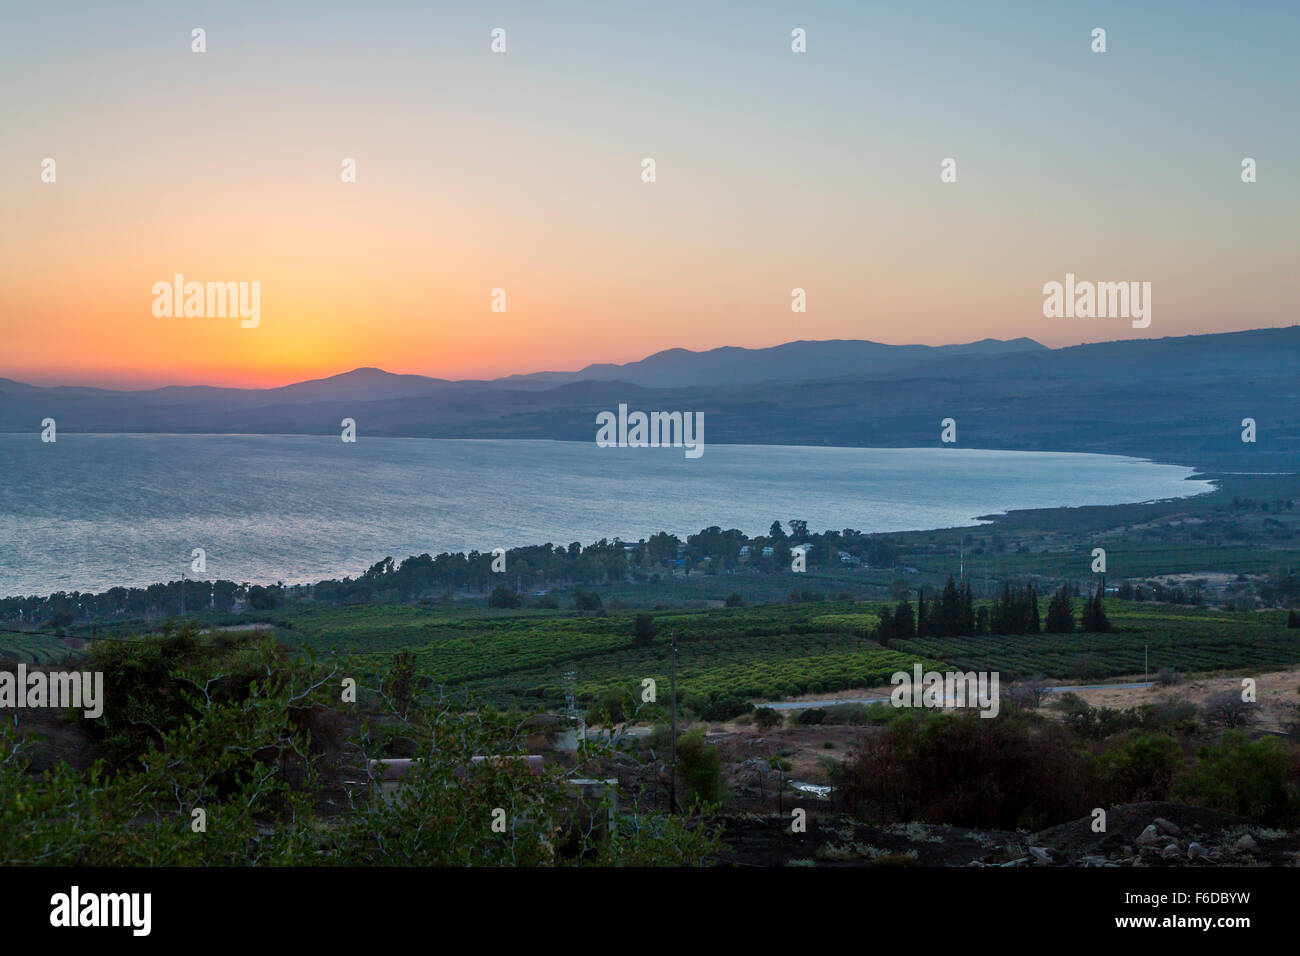 Sunset over the Sea of Galilee from Ramot, Golan Heights, Israel, MIddle East. Stock Photo